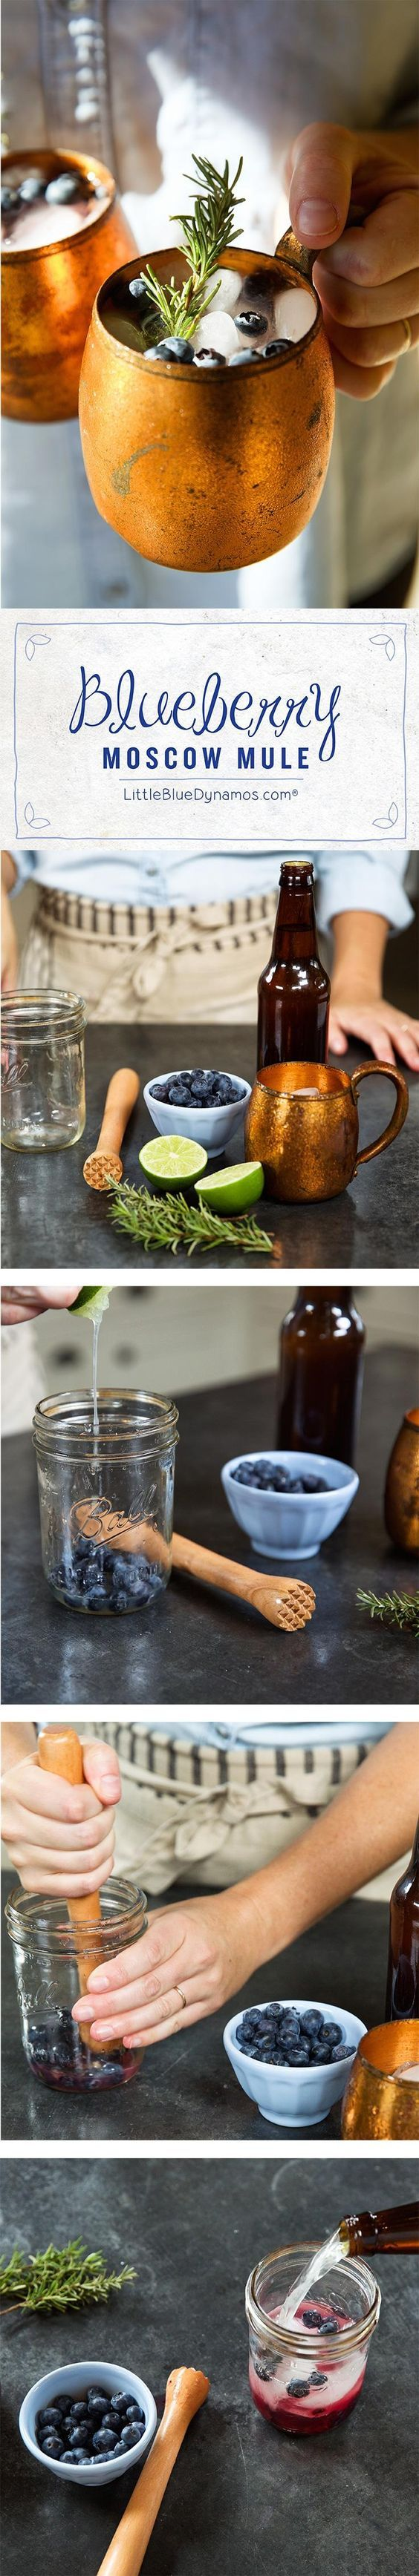 Blueberry Rosemary Moscow Mule